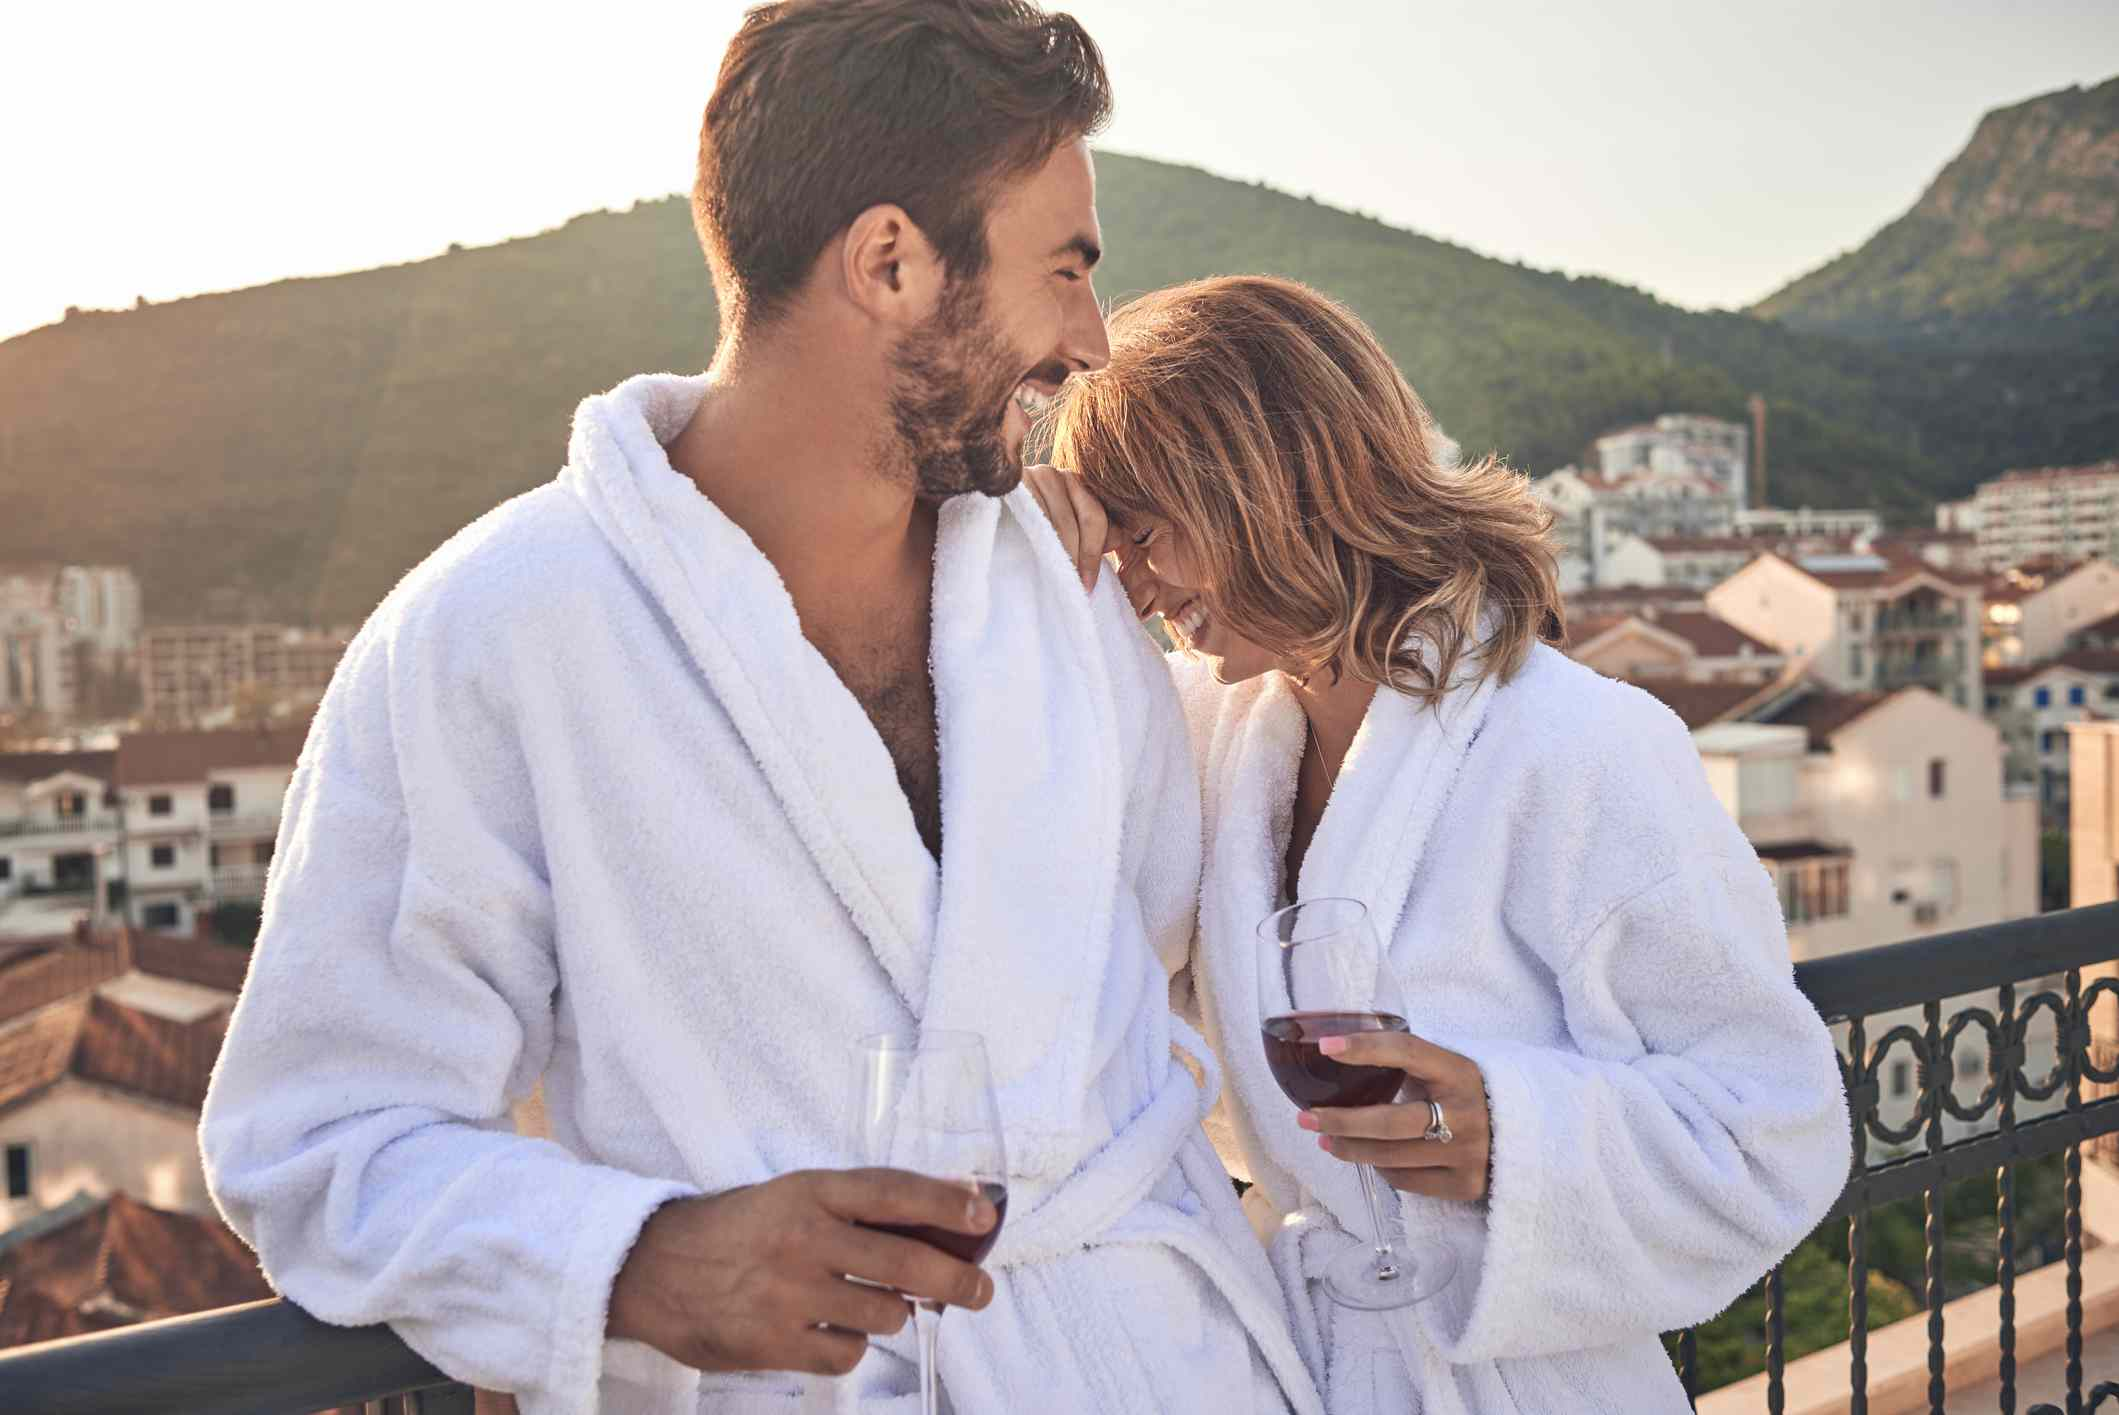 Couple laughing in robes